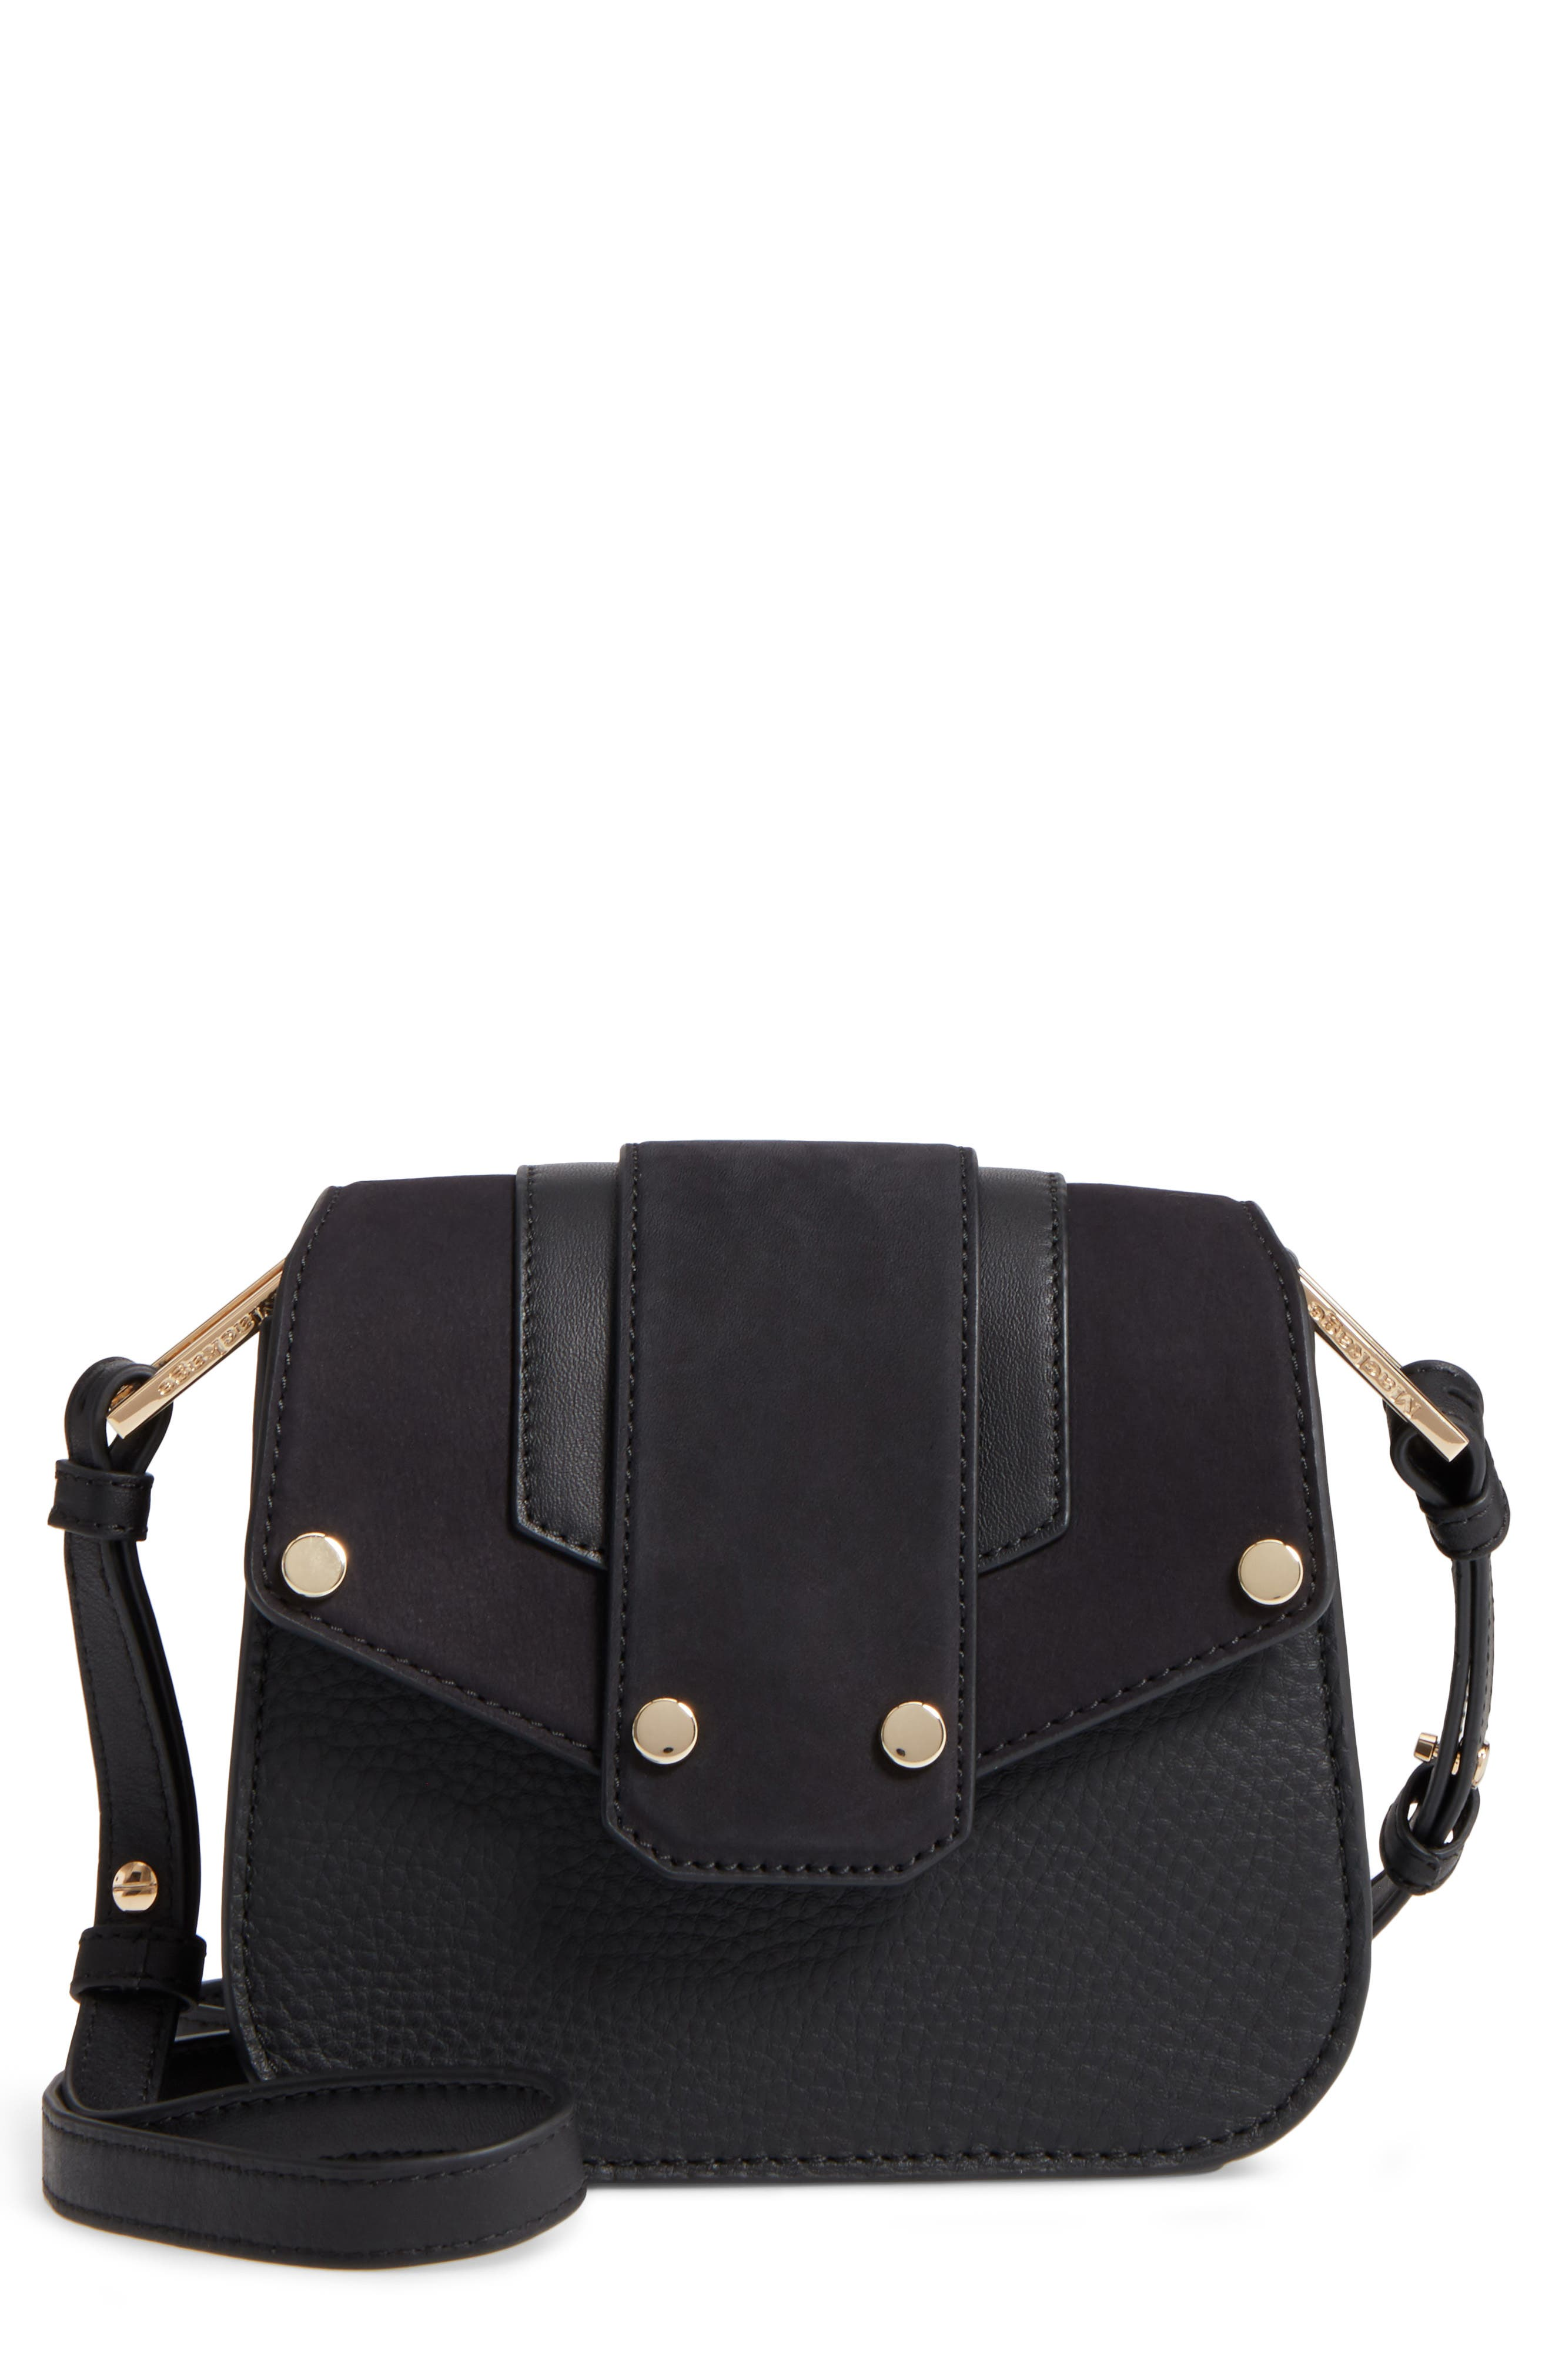 Alternate Image 1 Selected - Mackage Mini Polly Leather Crossbody Bag